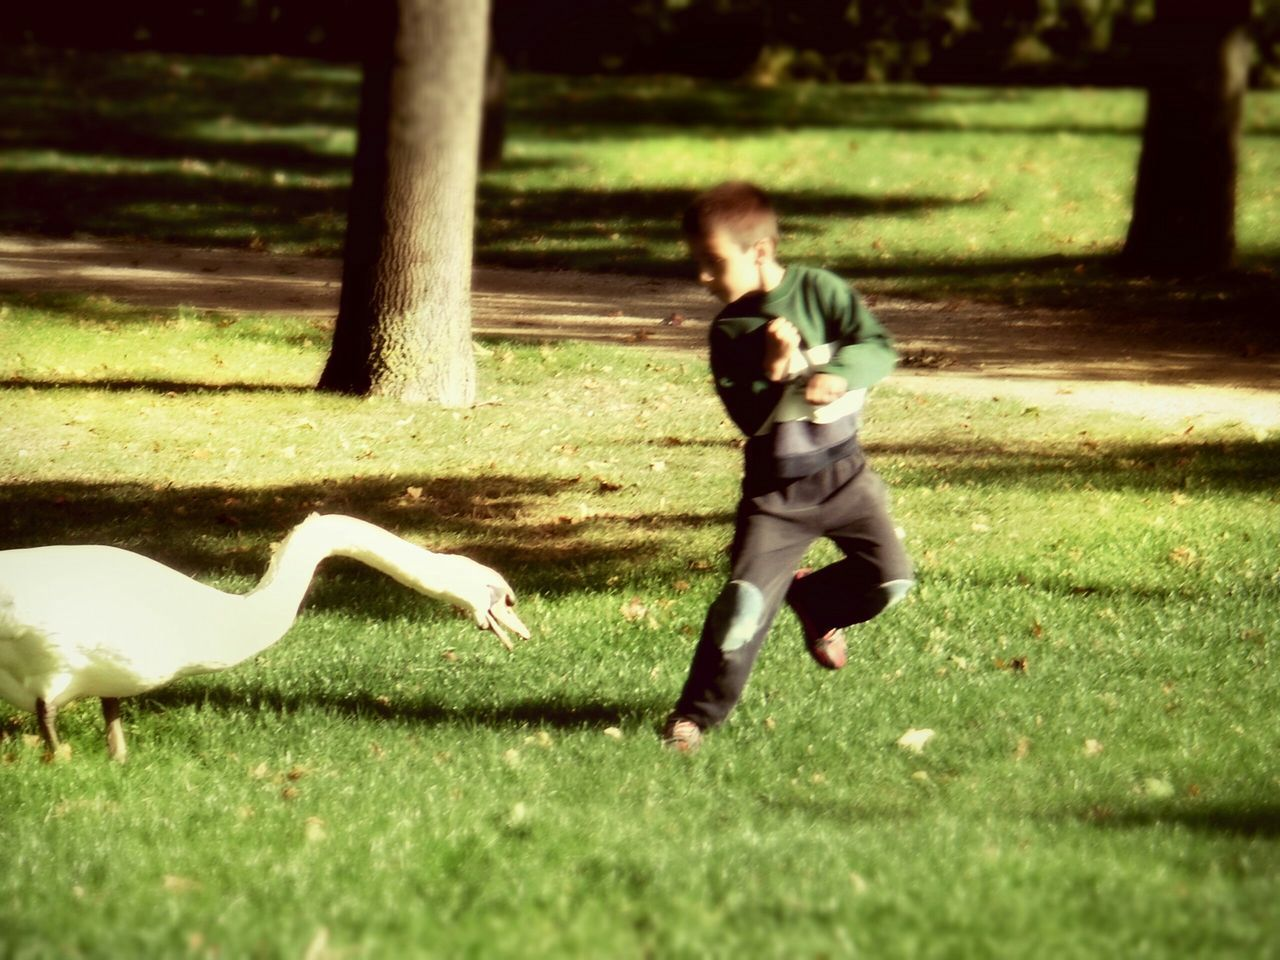 Full Length Of Playful Boy With Swan On Grassy Field